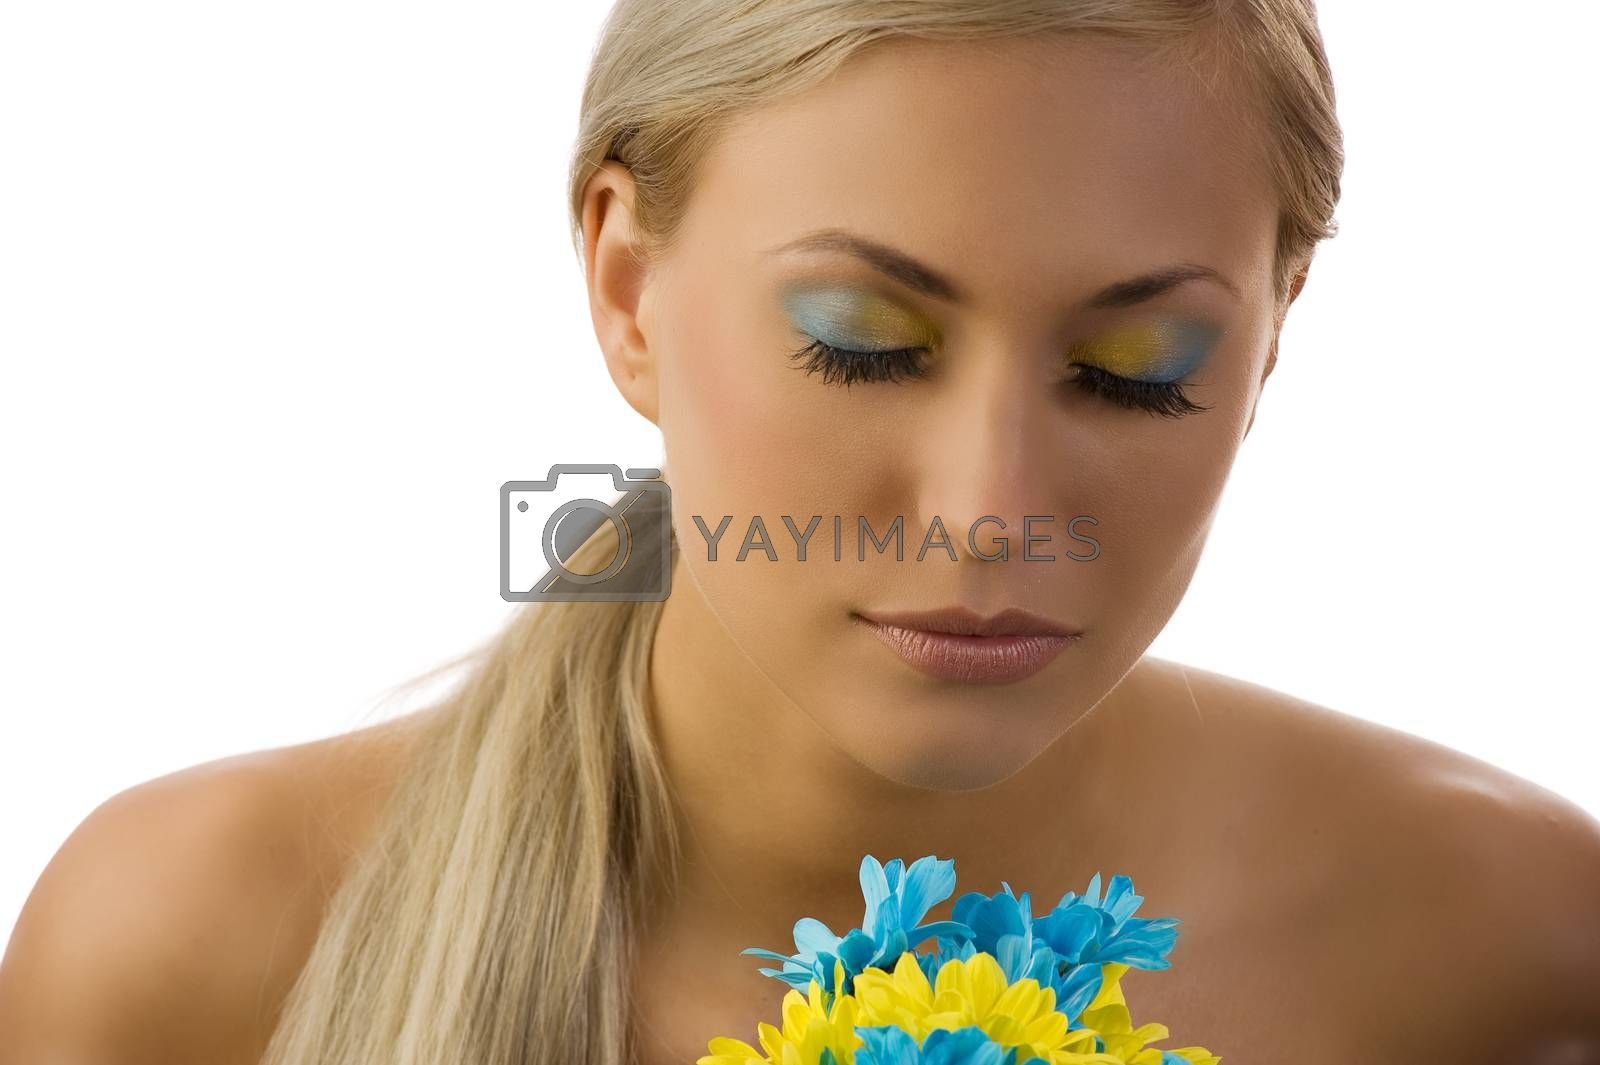 Royalty free image of yellow and blue beauty by fotoCD